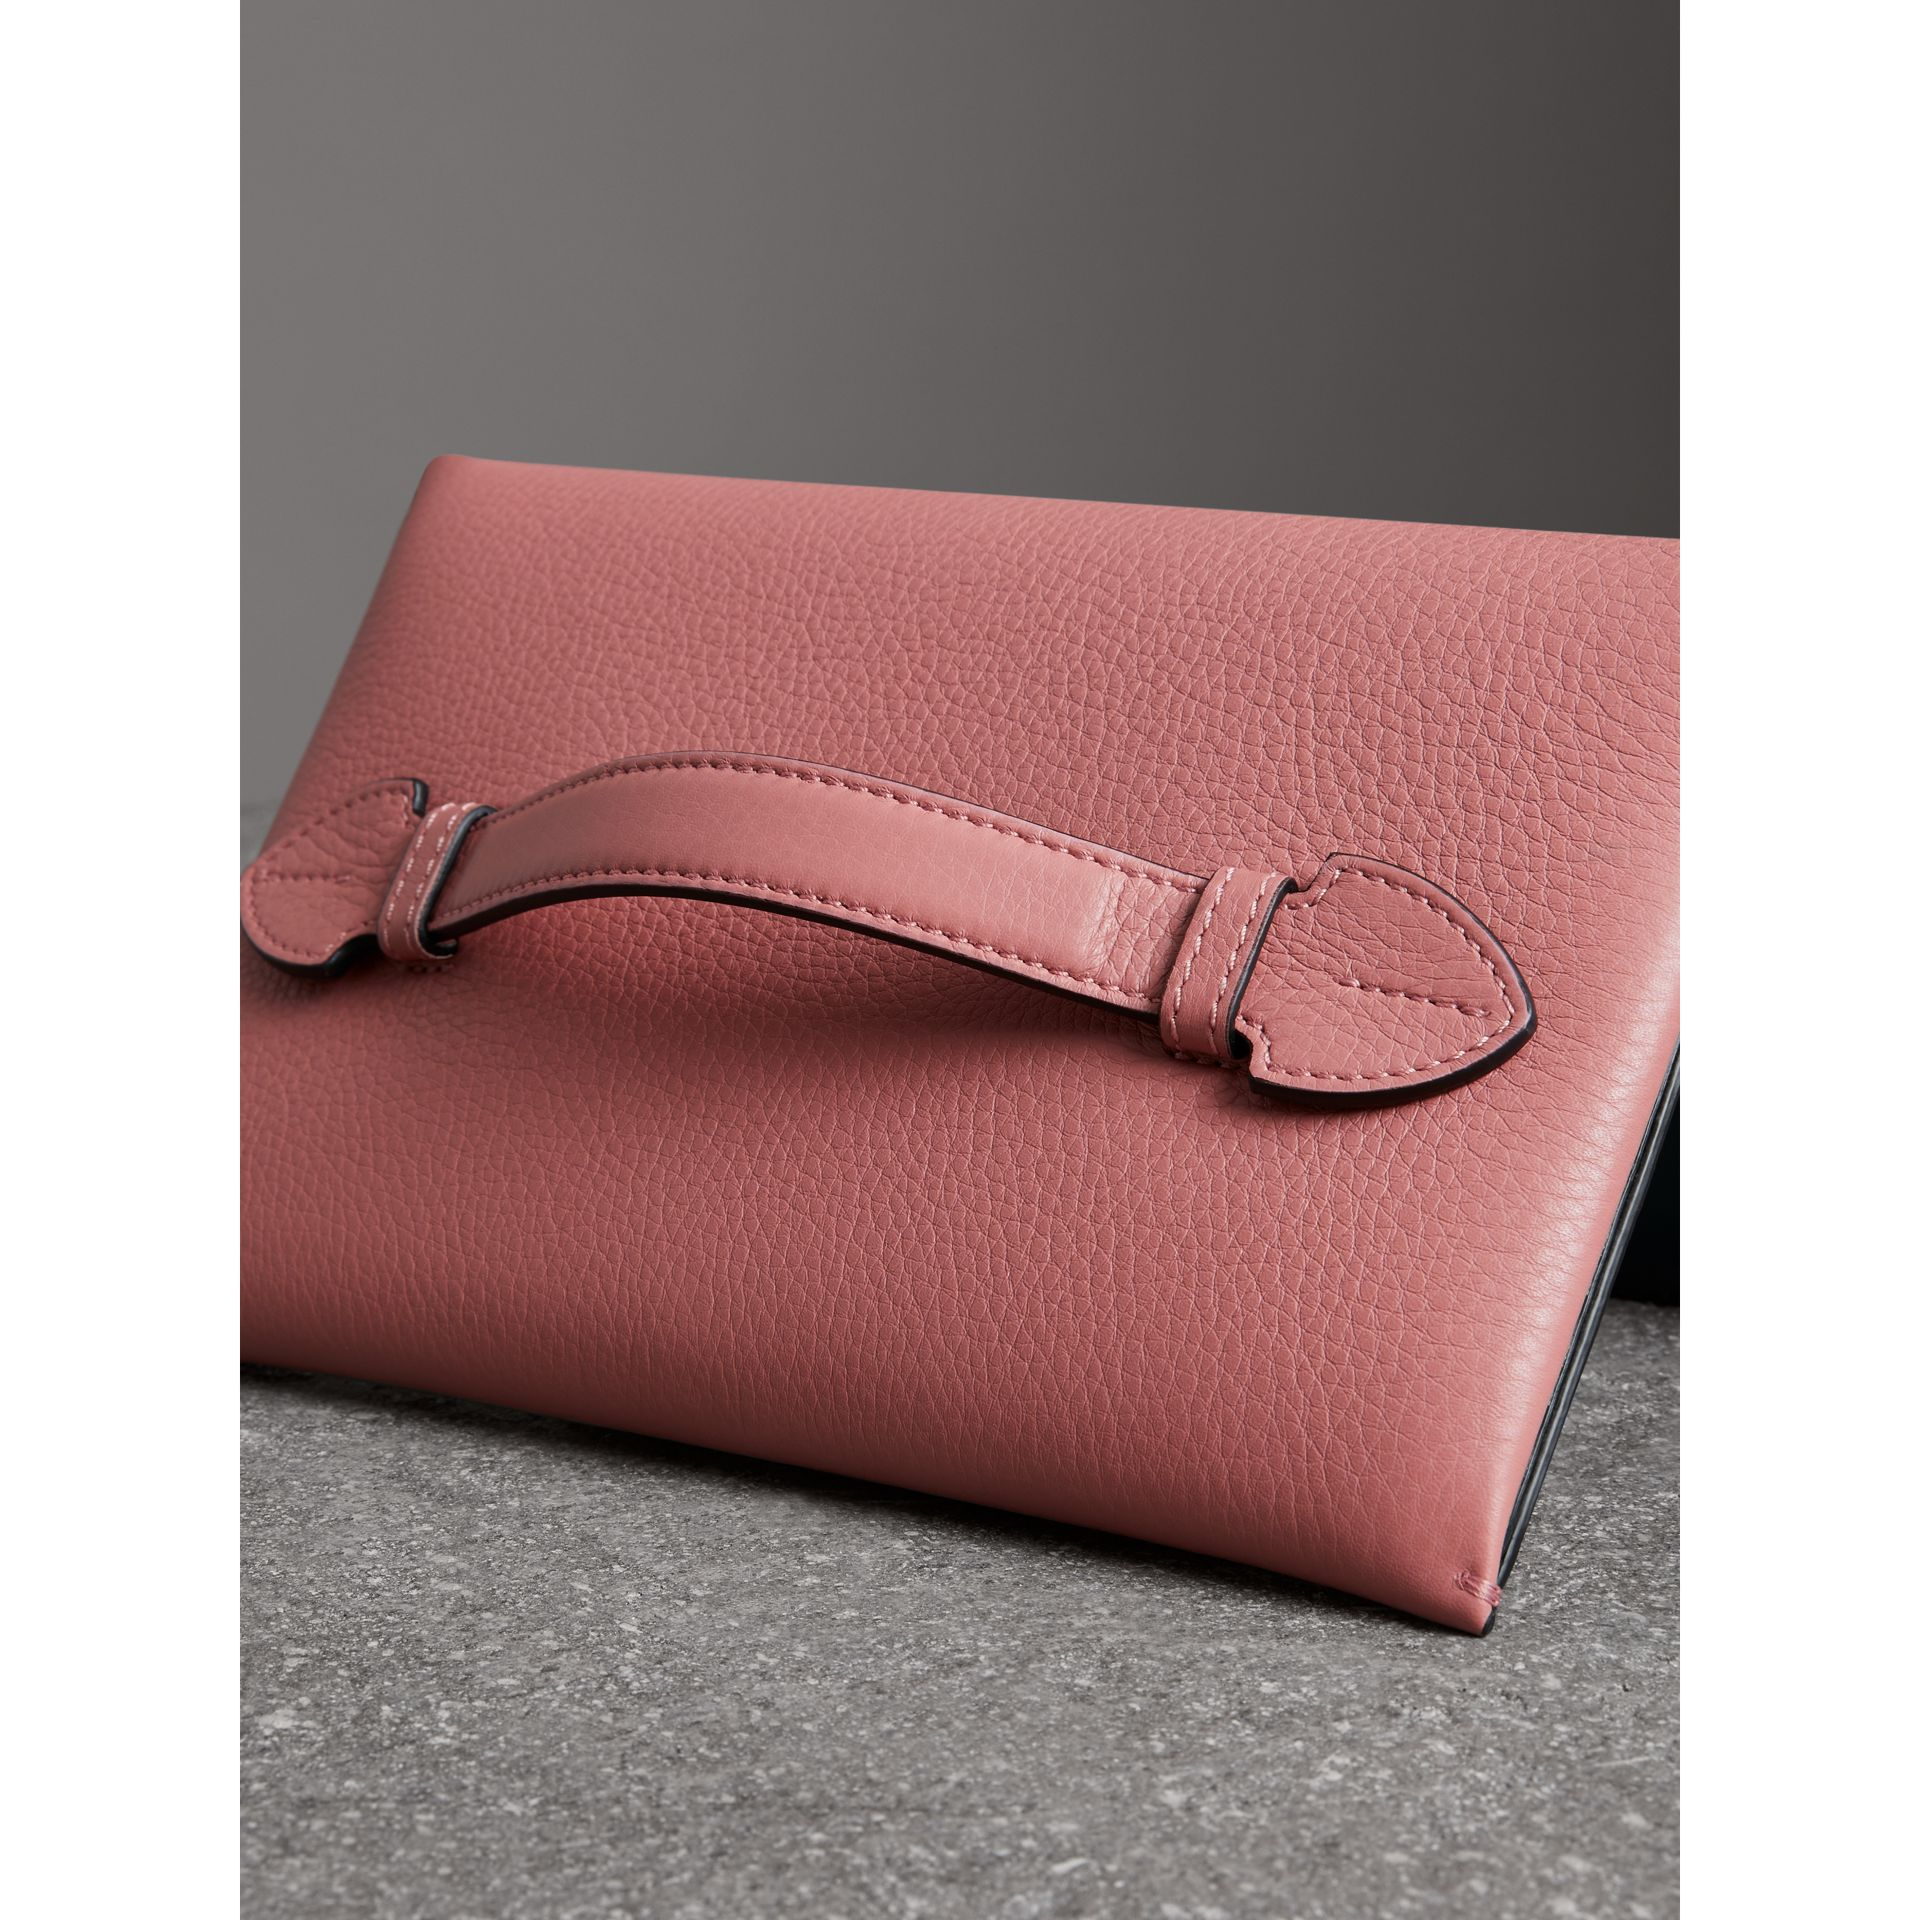 Two-tone Leather Wristlet Clutch in Dusty Rose - Women | Burberry Singapore - gallery image 2